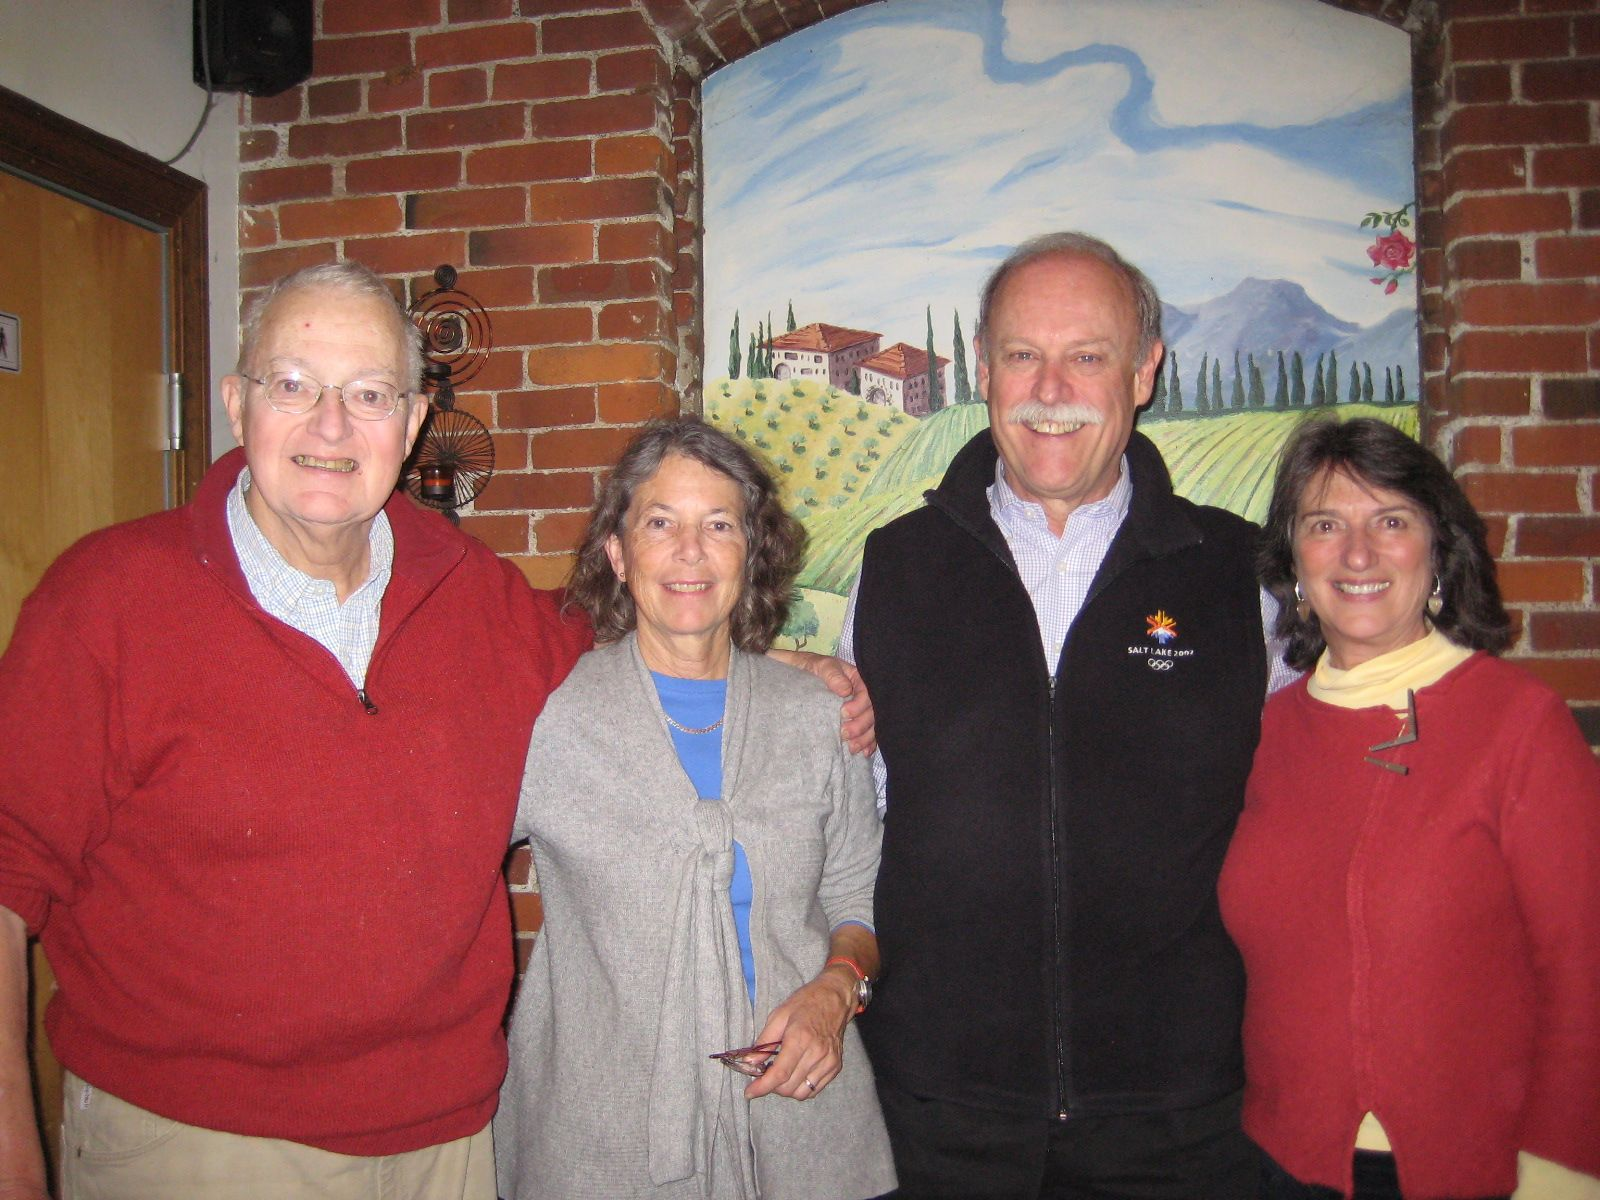 On October 10, 2012 in Hanover, New Hampshire, members of Alumni staff met for coffee with the Birnies and Collas. Pictured (left to right): Pietie and Dick Birnie '62 and Judith and Stan Colla '62.